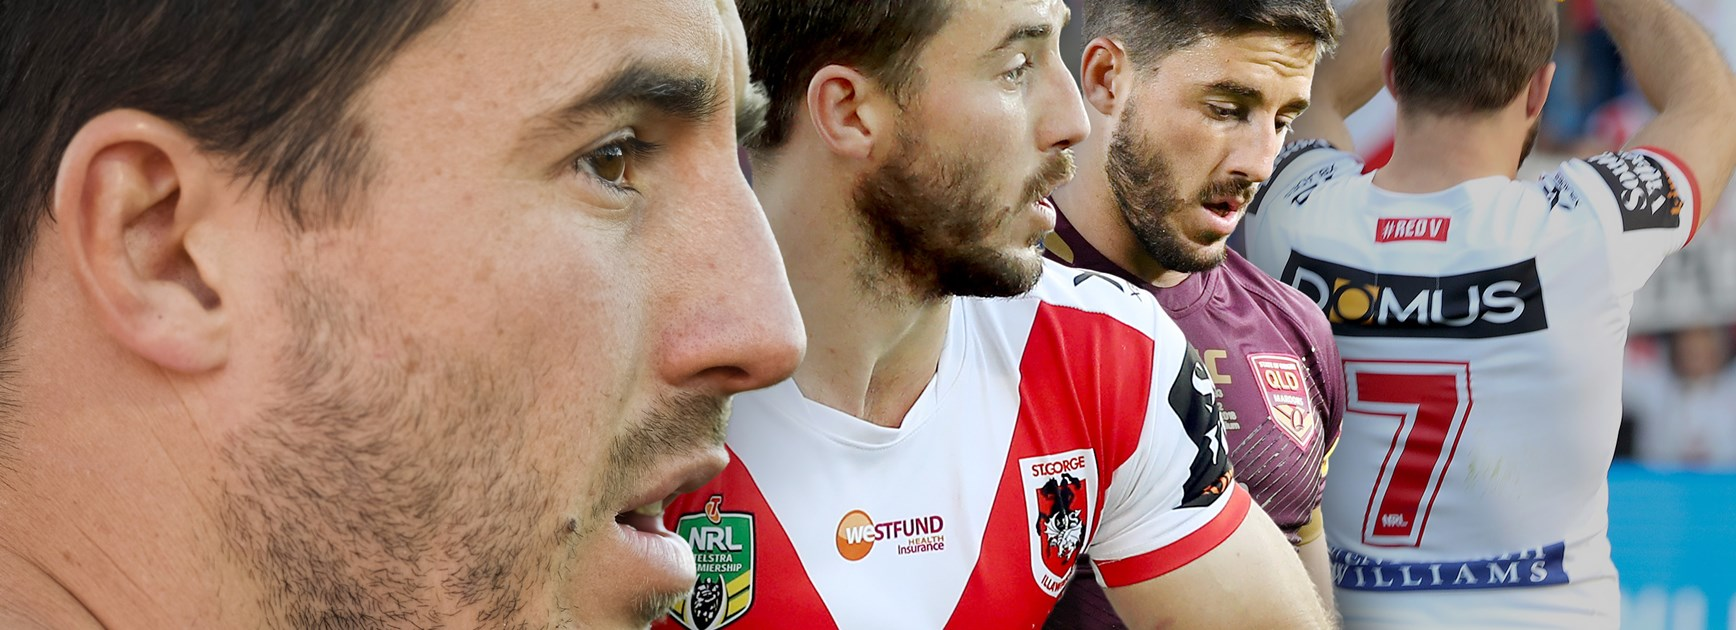 Sometimes I feel lonely: The vitriol that led Ben Hunt to a psychologist